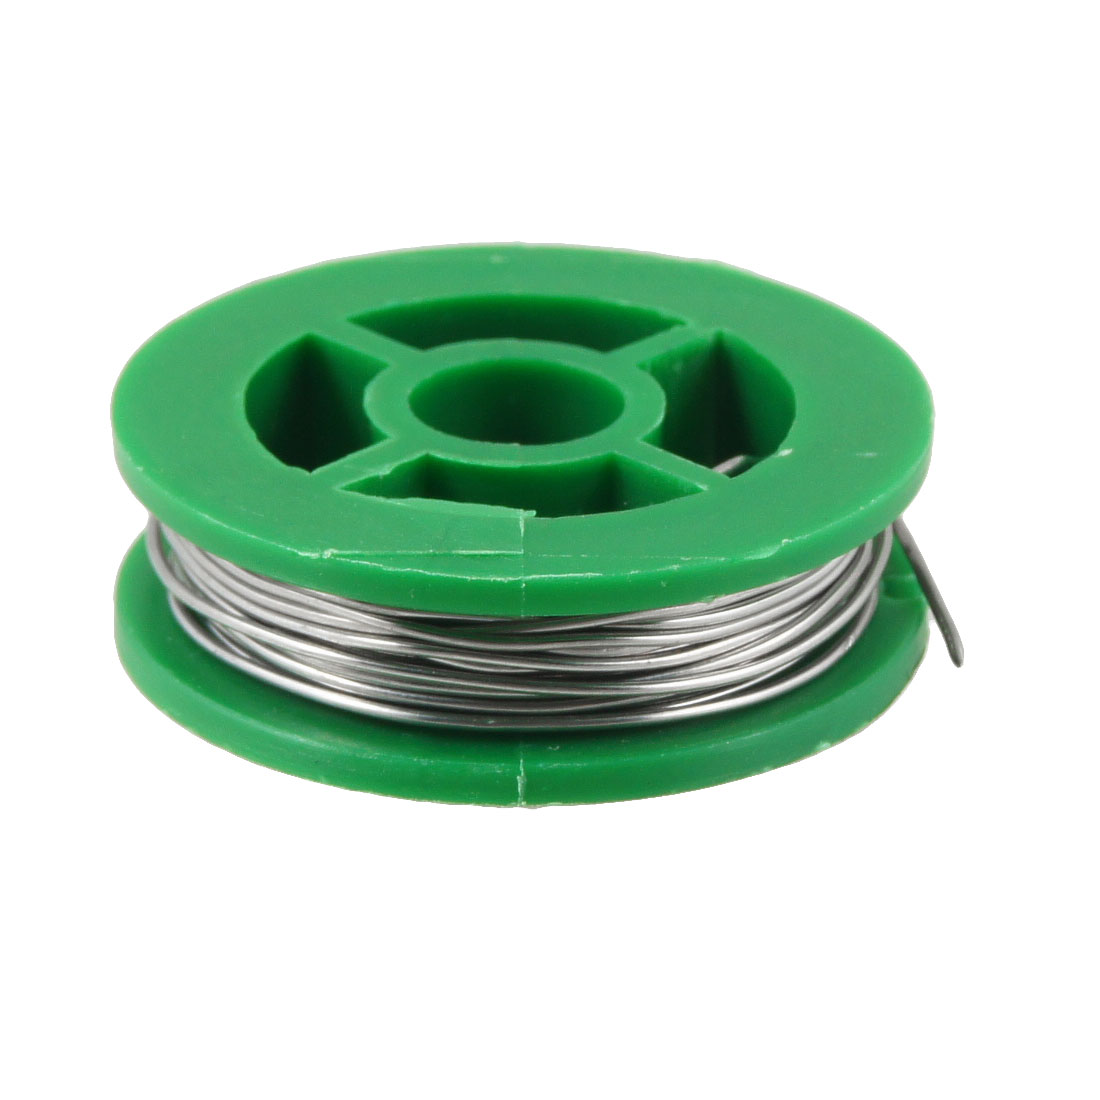 1.6M Long 0.8mm Diameter 10g 63/37 Tin Lead Soldering Wire Reel